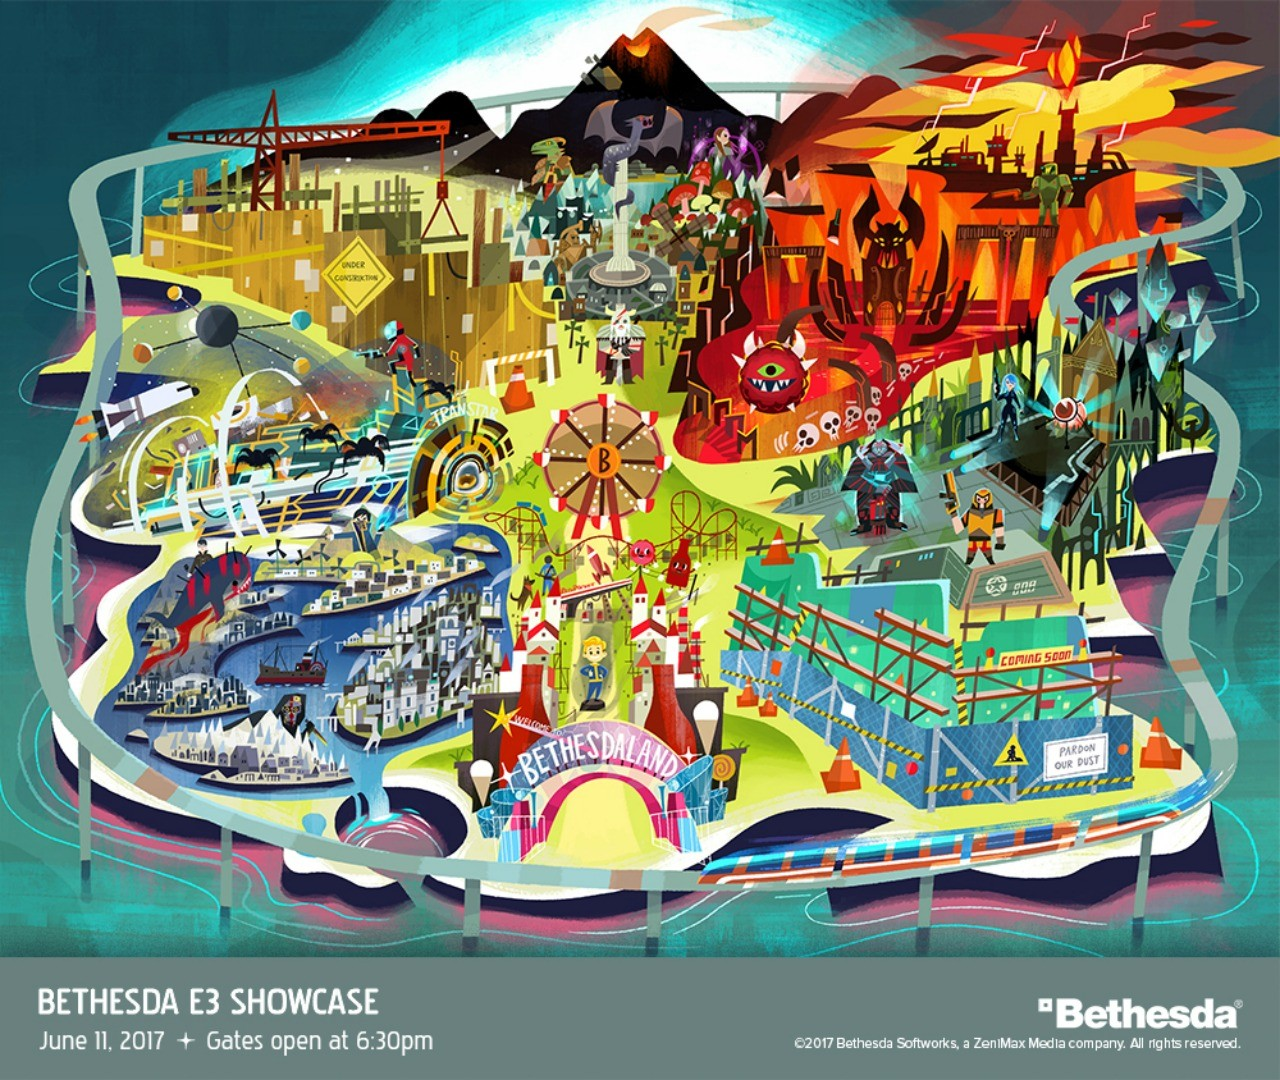 Bethesda Teases Two Reveals At E3 2017